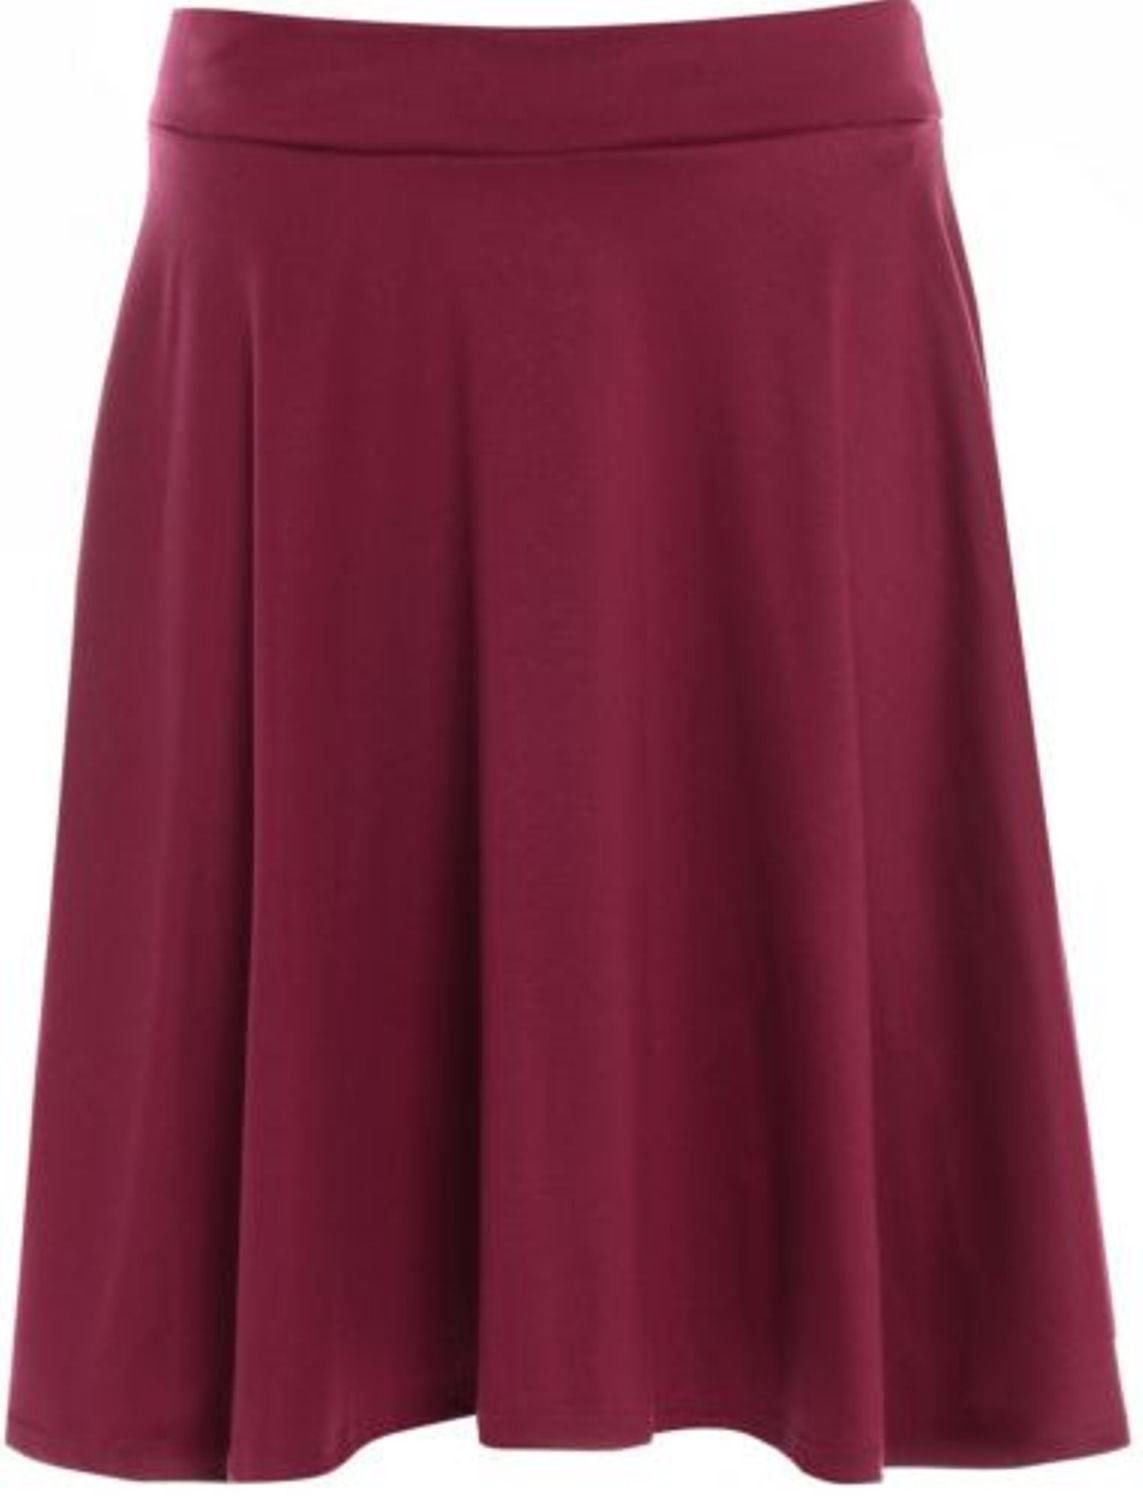 new womens plus size waist band flared skater skirts